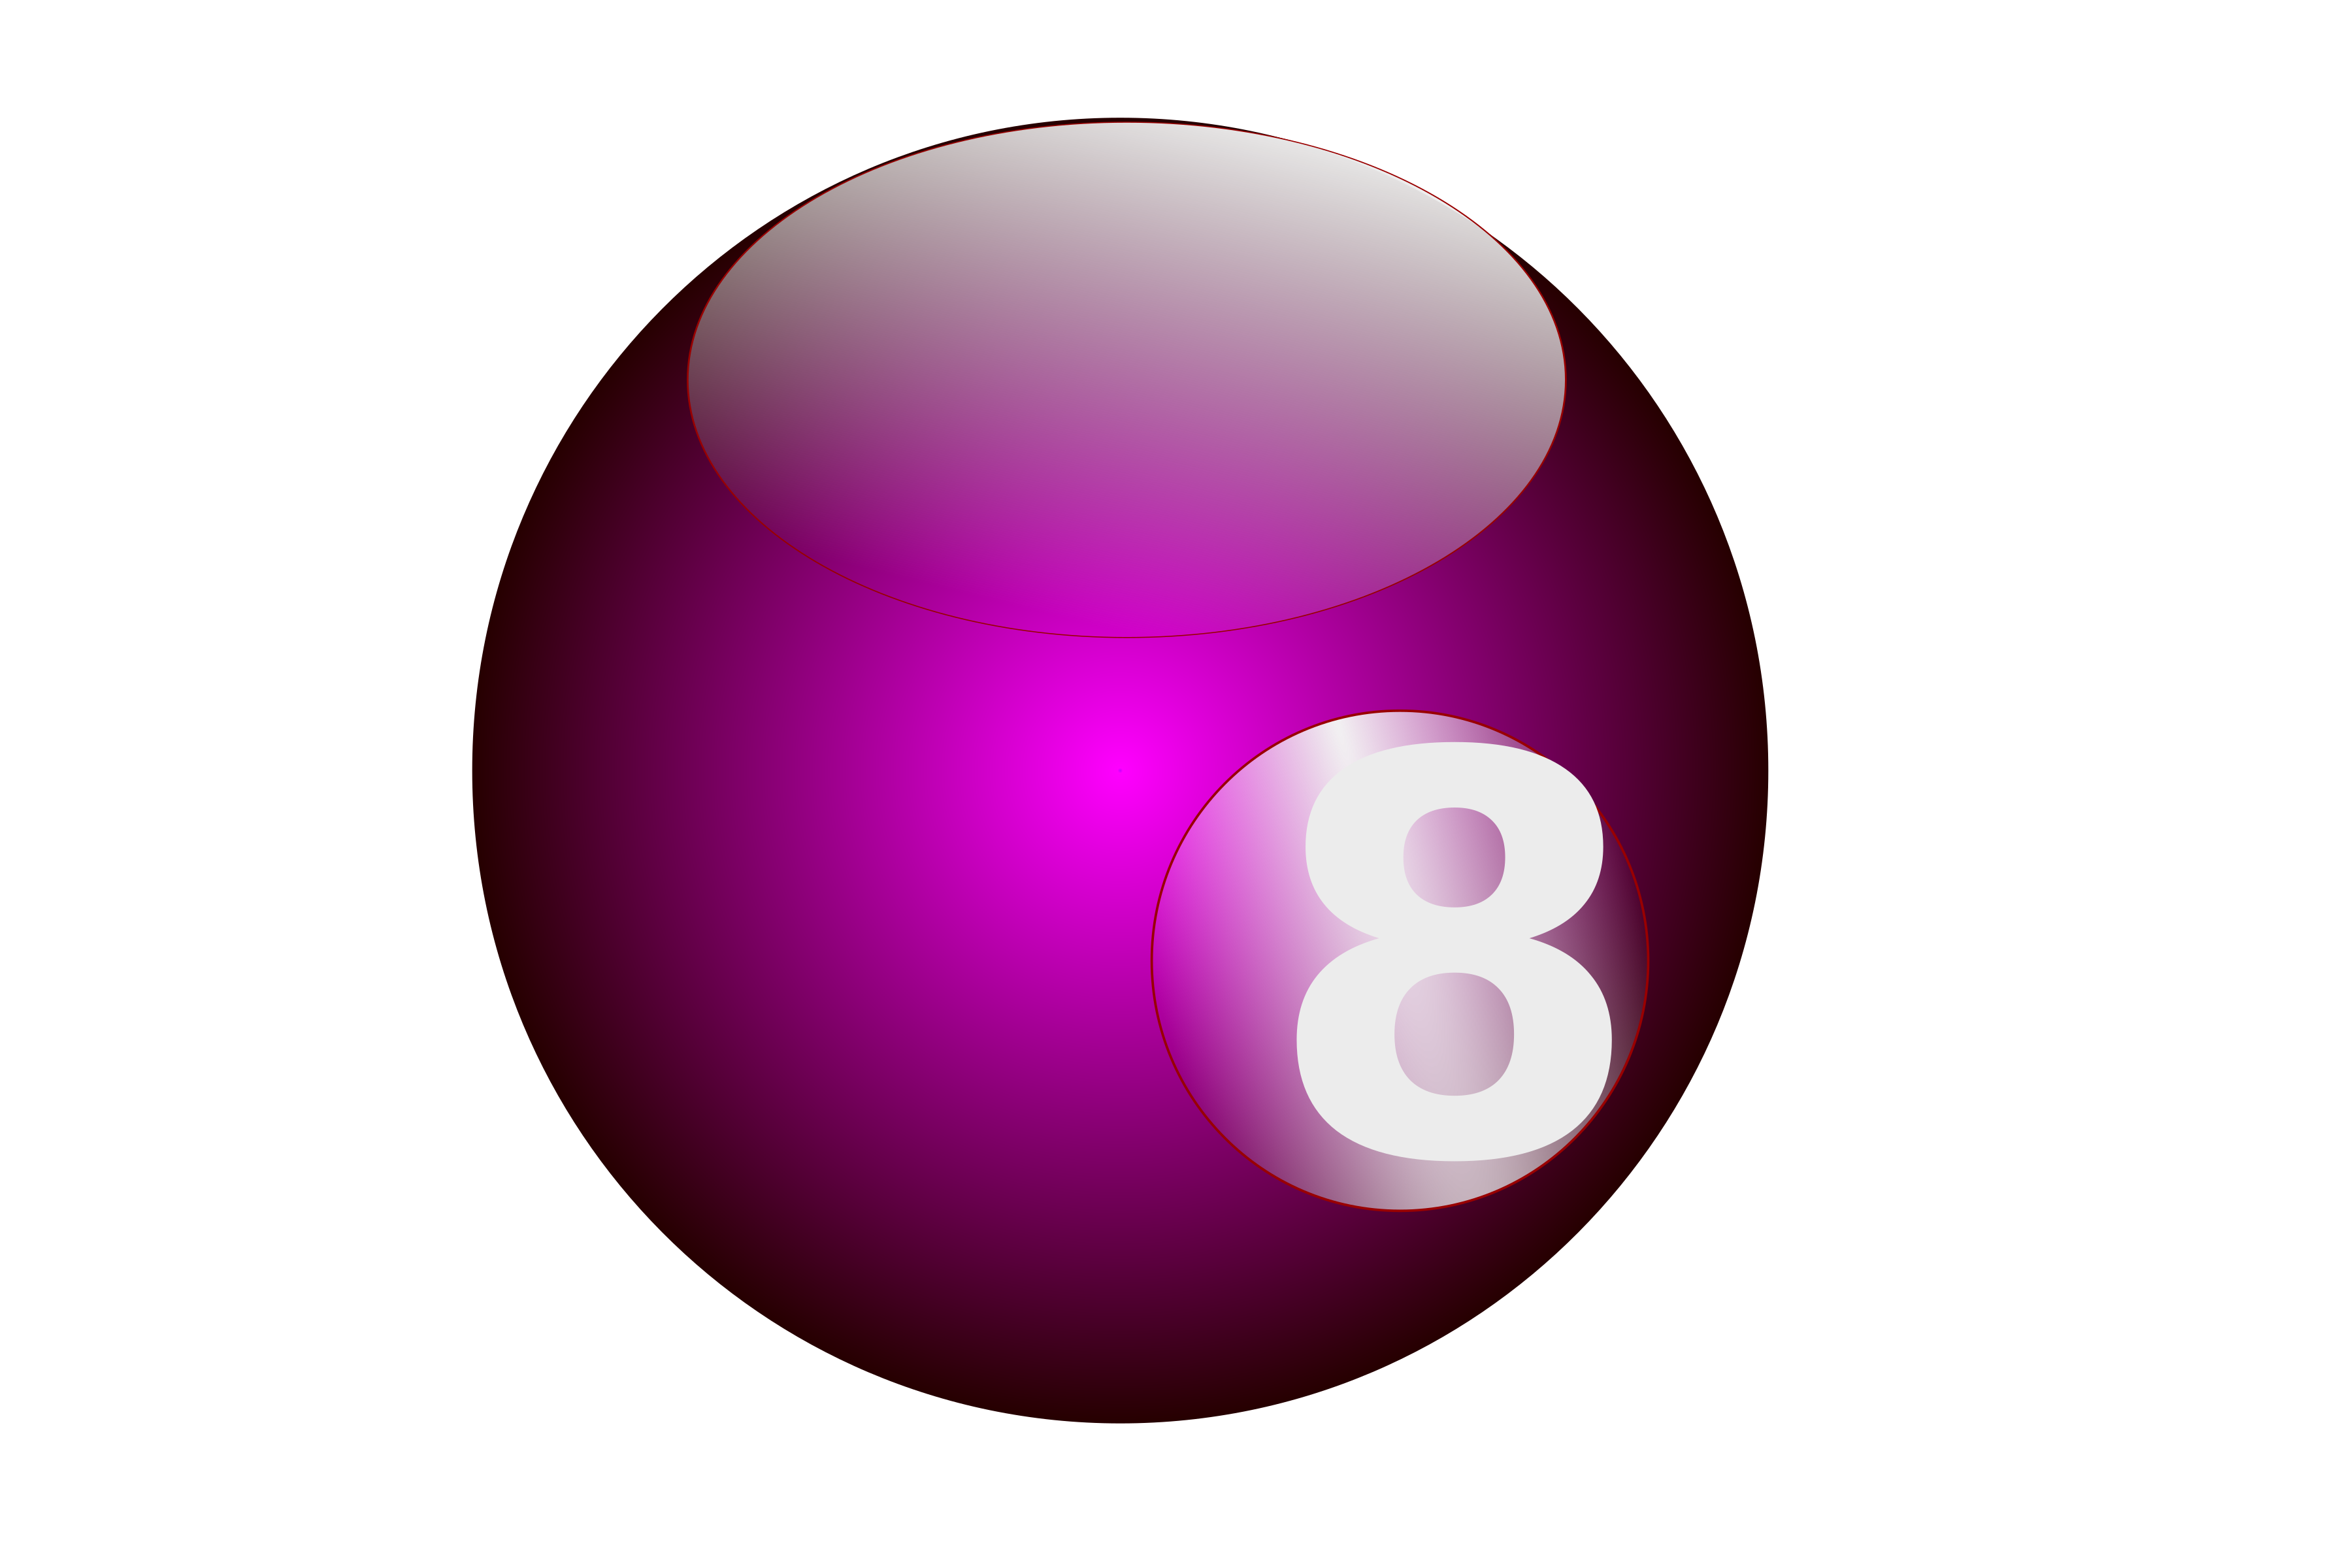 3d ball png. D icons free